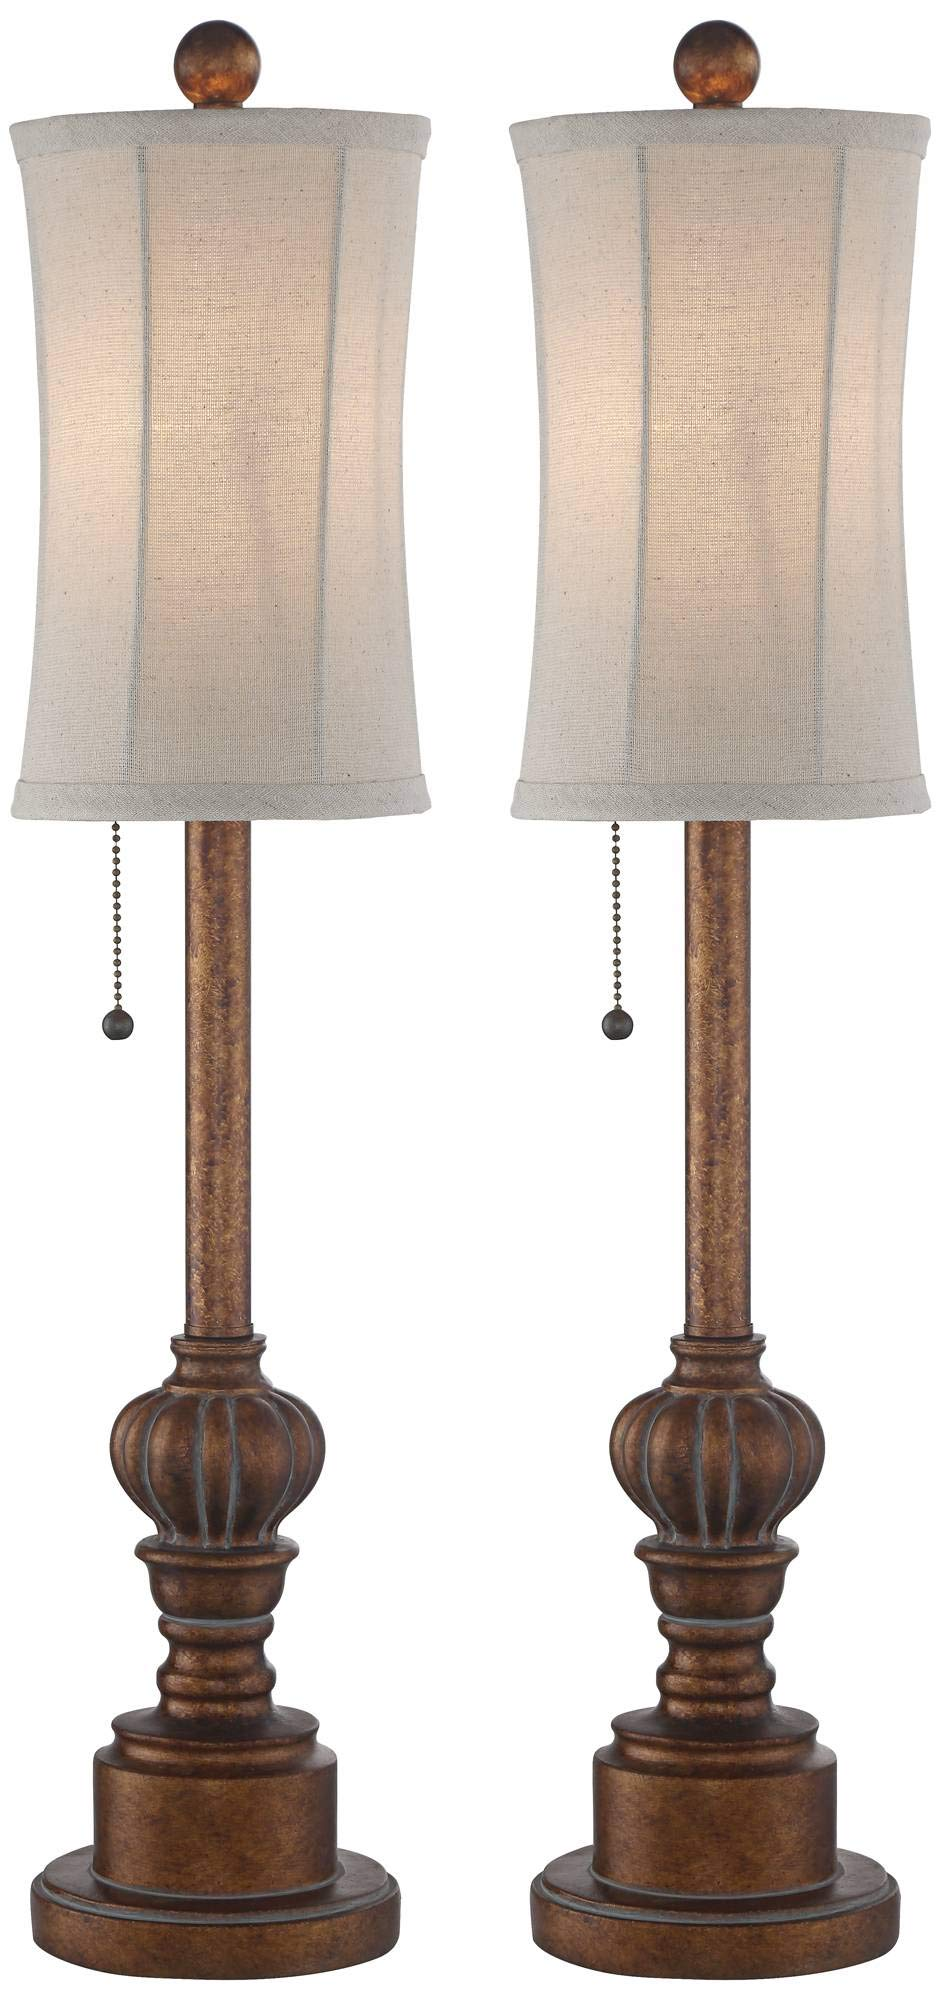 Bertie Traditional Buffet Table Lamps Set of 2 Warm Brown Wood Tone Tall Fabric Drum Shade for Dining Room - Regency Hill by Regency Hill